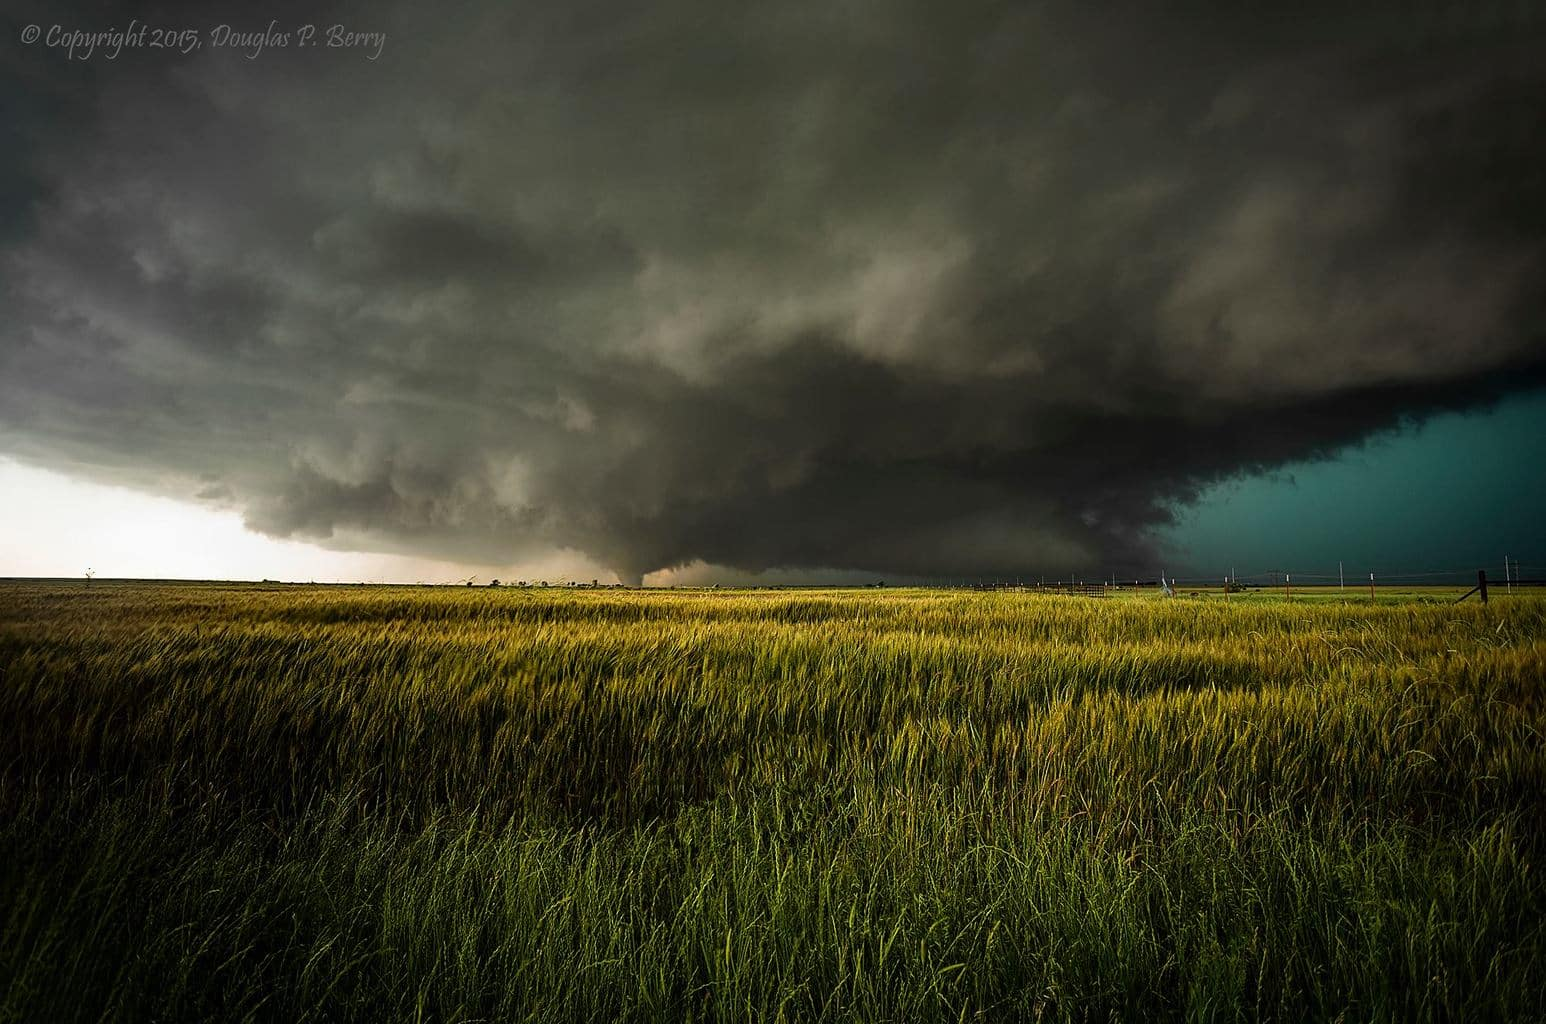 Initial touchdown of the El Reno tornado on May 31, 2013. I had never seen a storm spin so fast in 16 years of chasing.